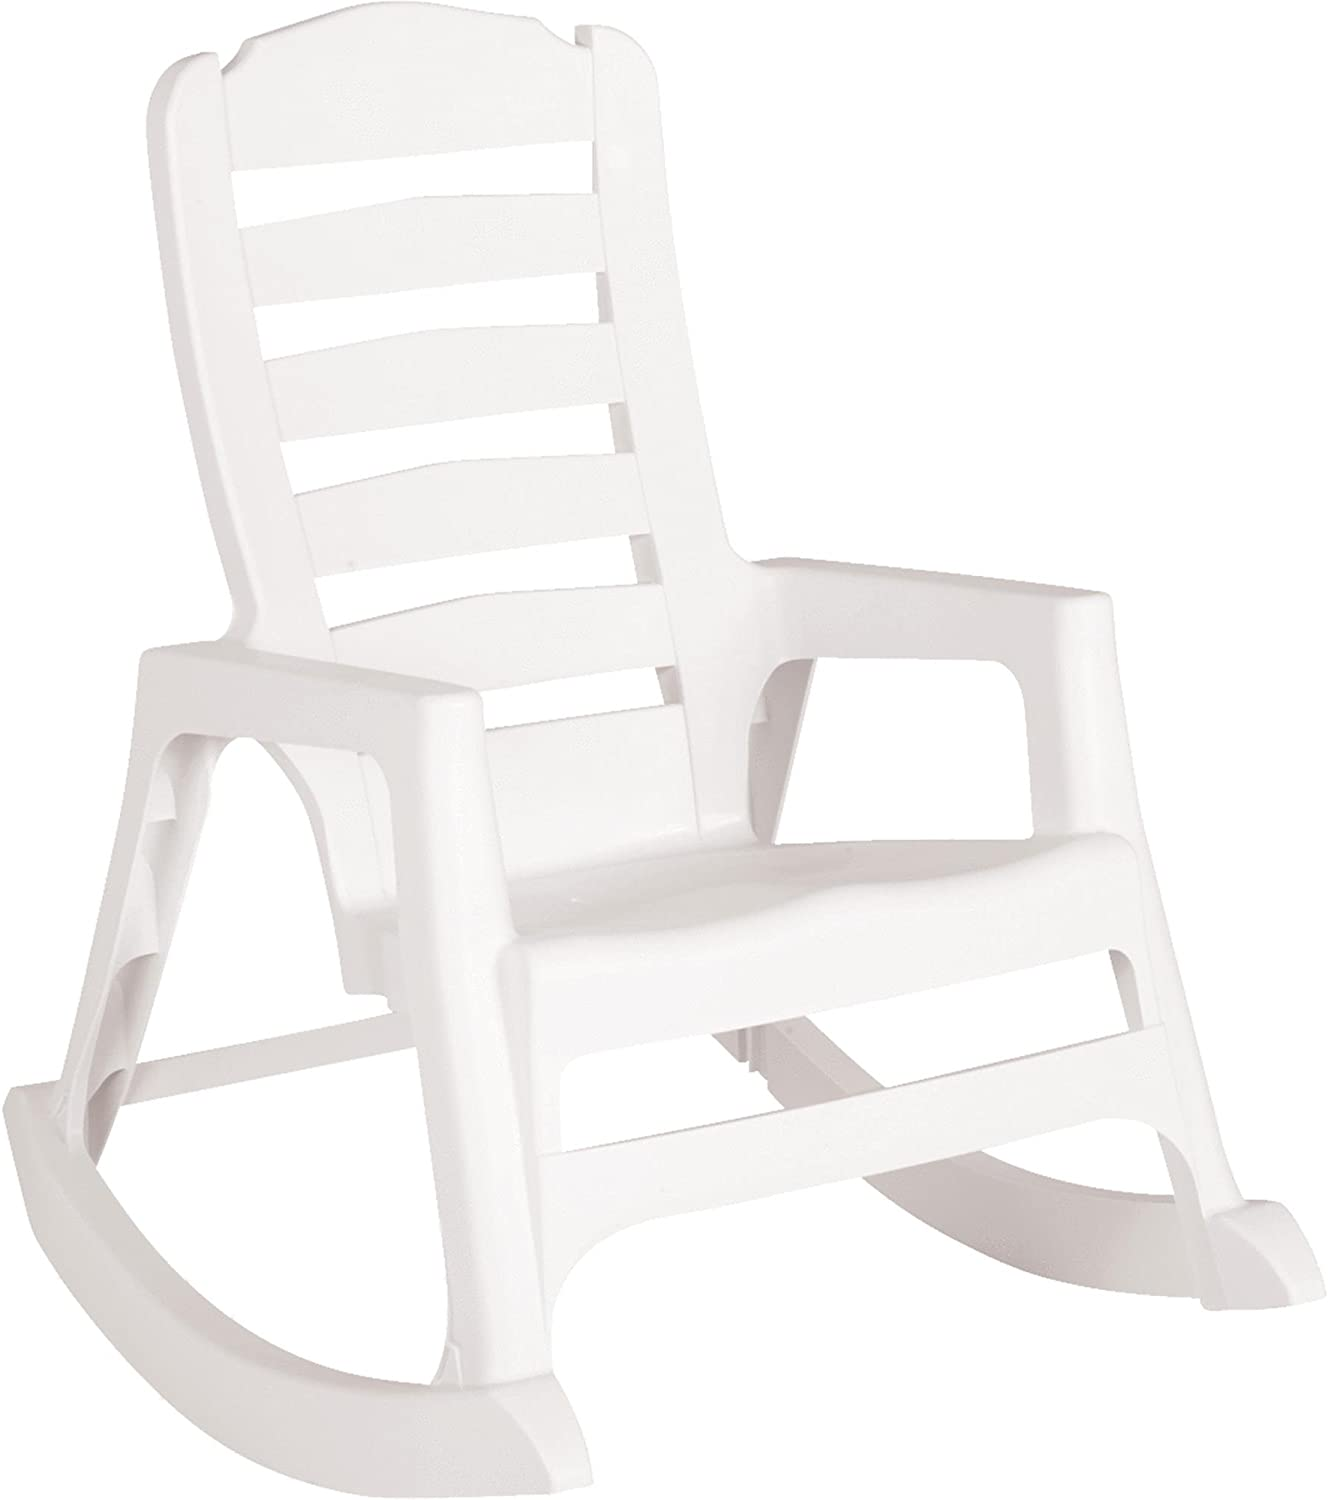 ADAMS MFG PATIO FURN 8080-48-3700 Big Easy Rocking Chairs, White